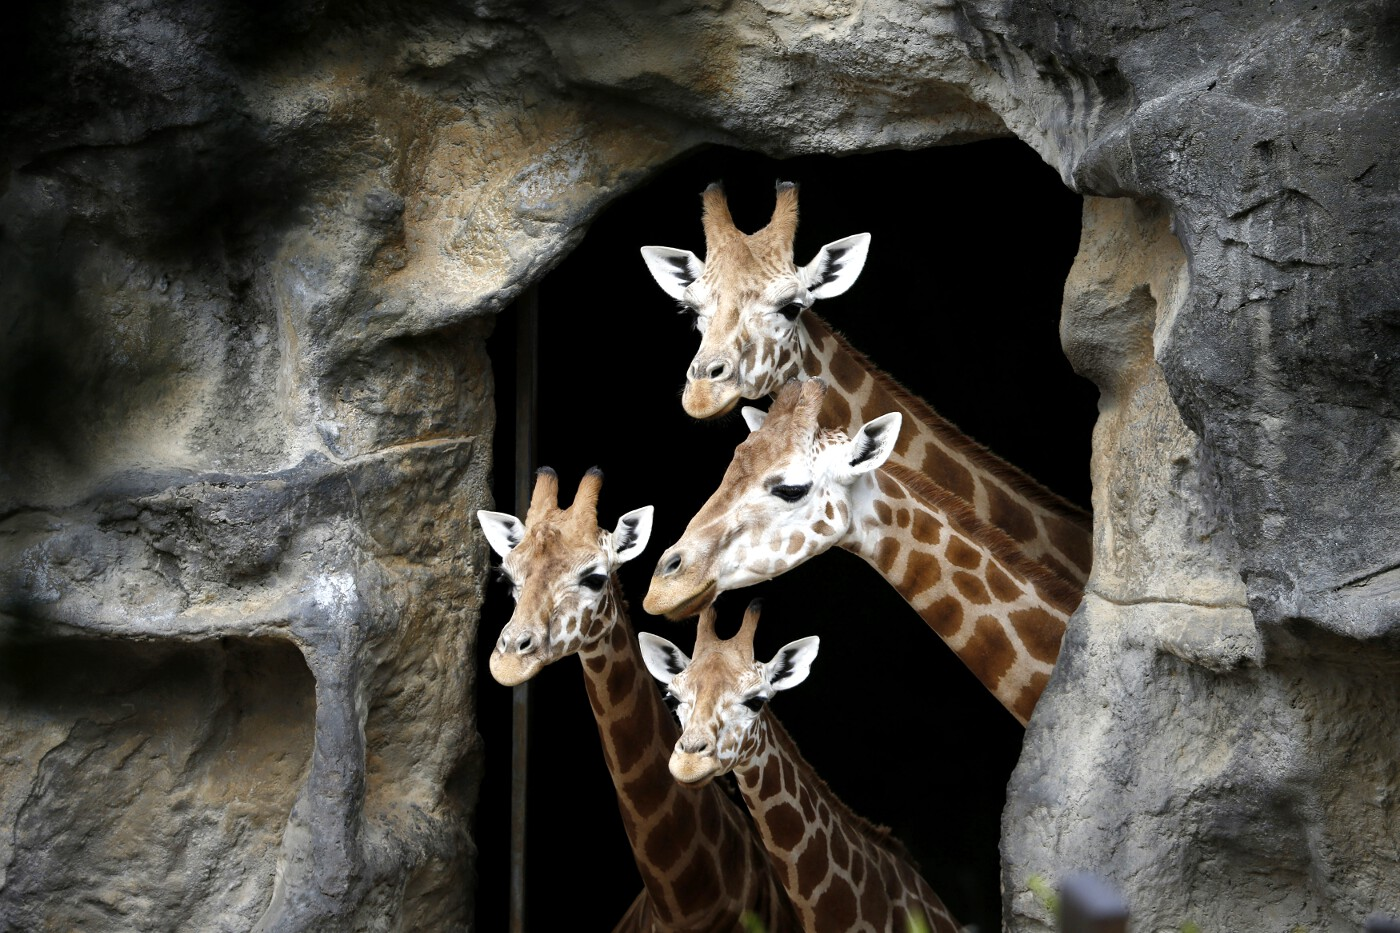 Animals of 2014 - Giraffe family